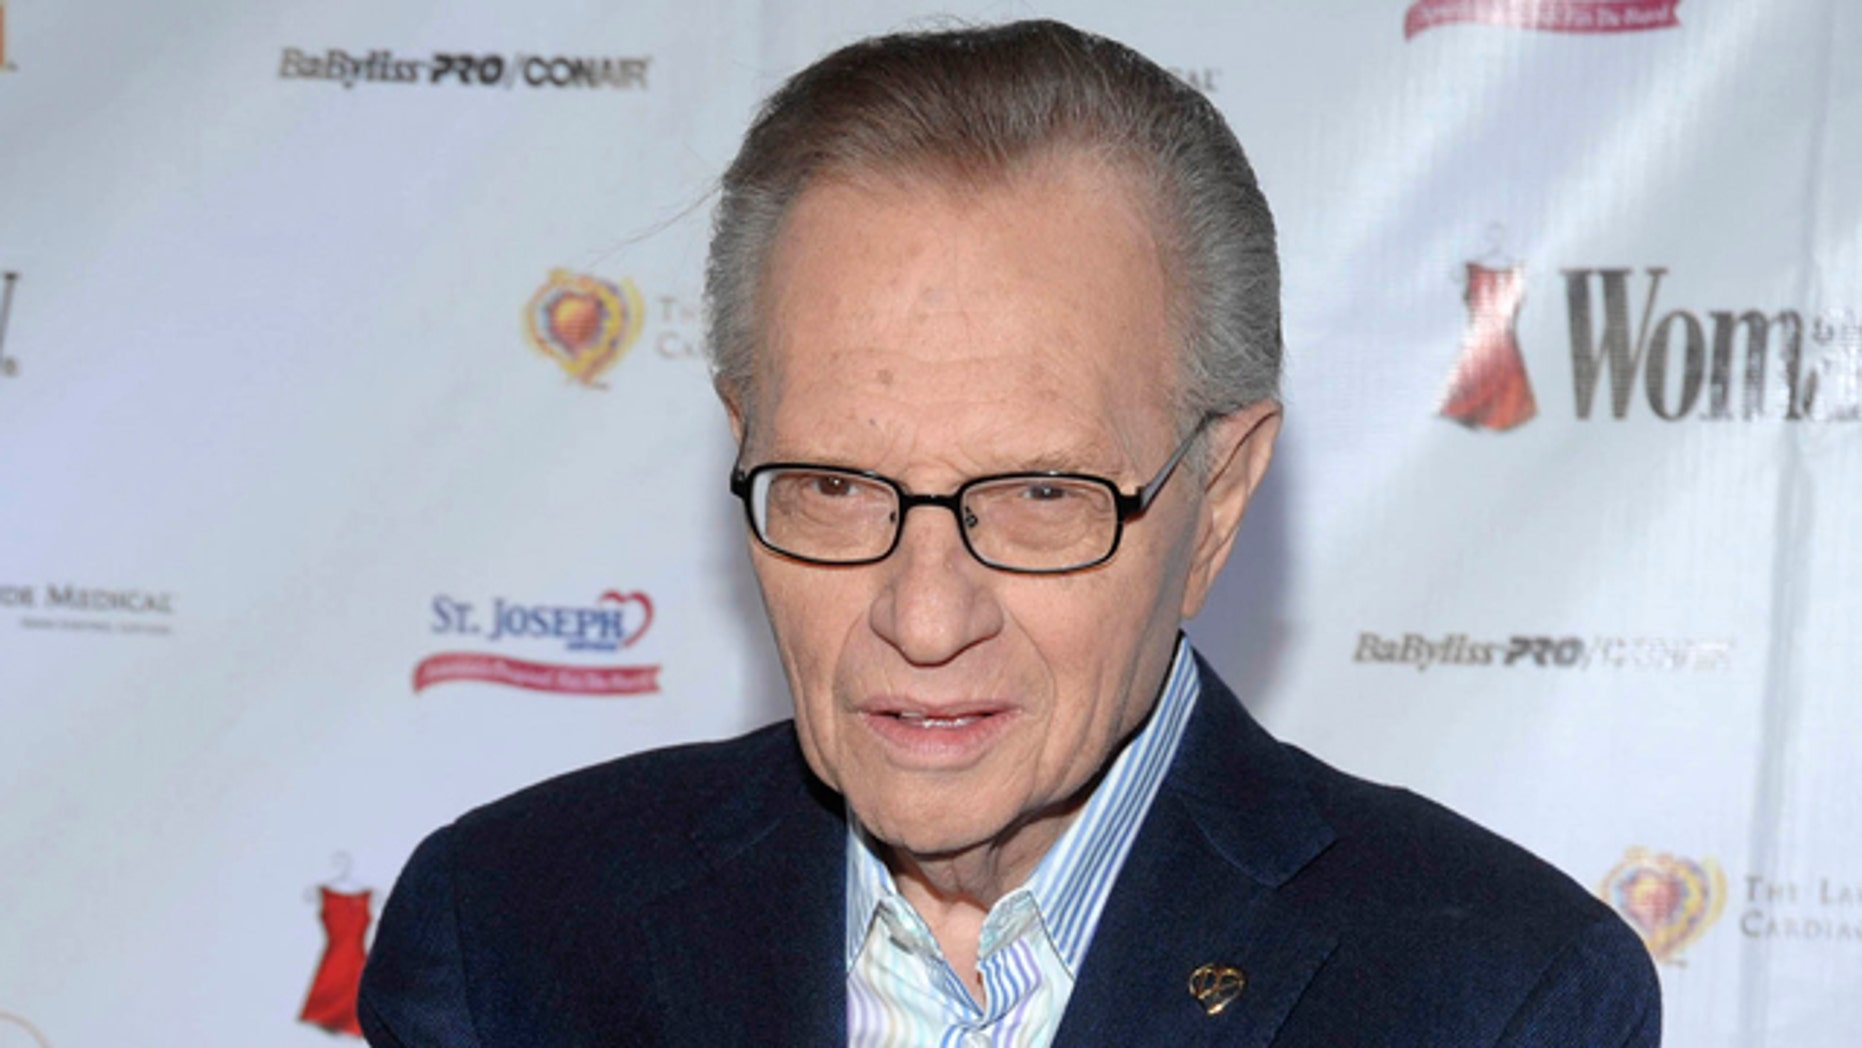 """In this Feb. 11, 2009 file photo, TV Personality Larry King attends the Woman's Day 6th annual """"Red Dress Awards""""  benefiting The Larry King Cardiac Foundation in New York."""